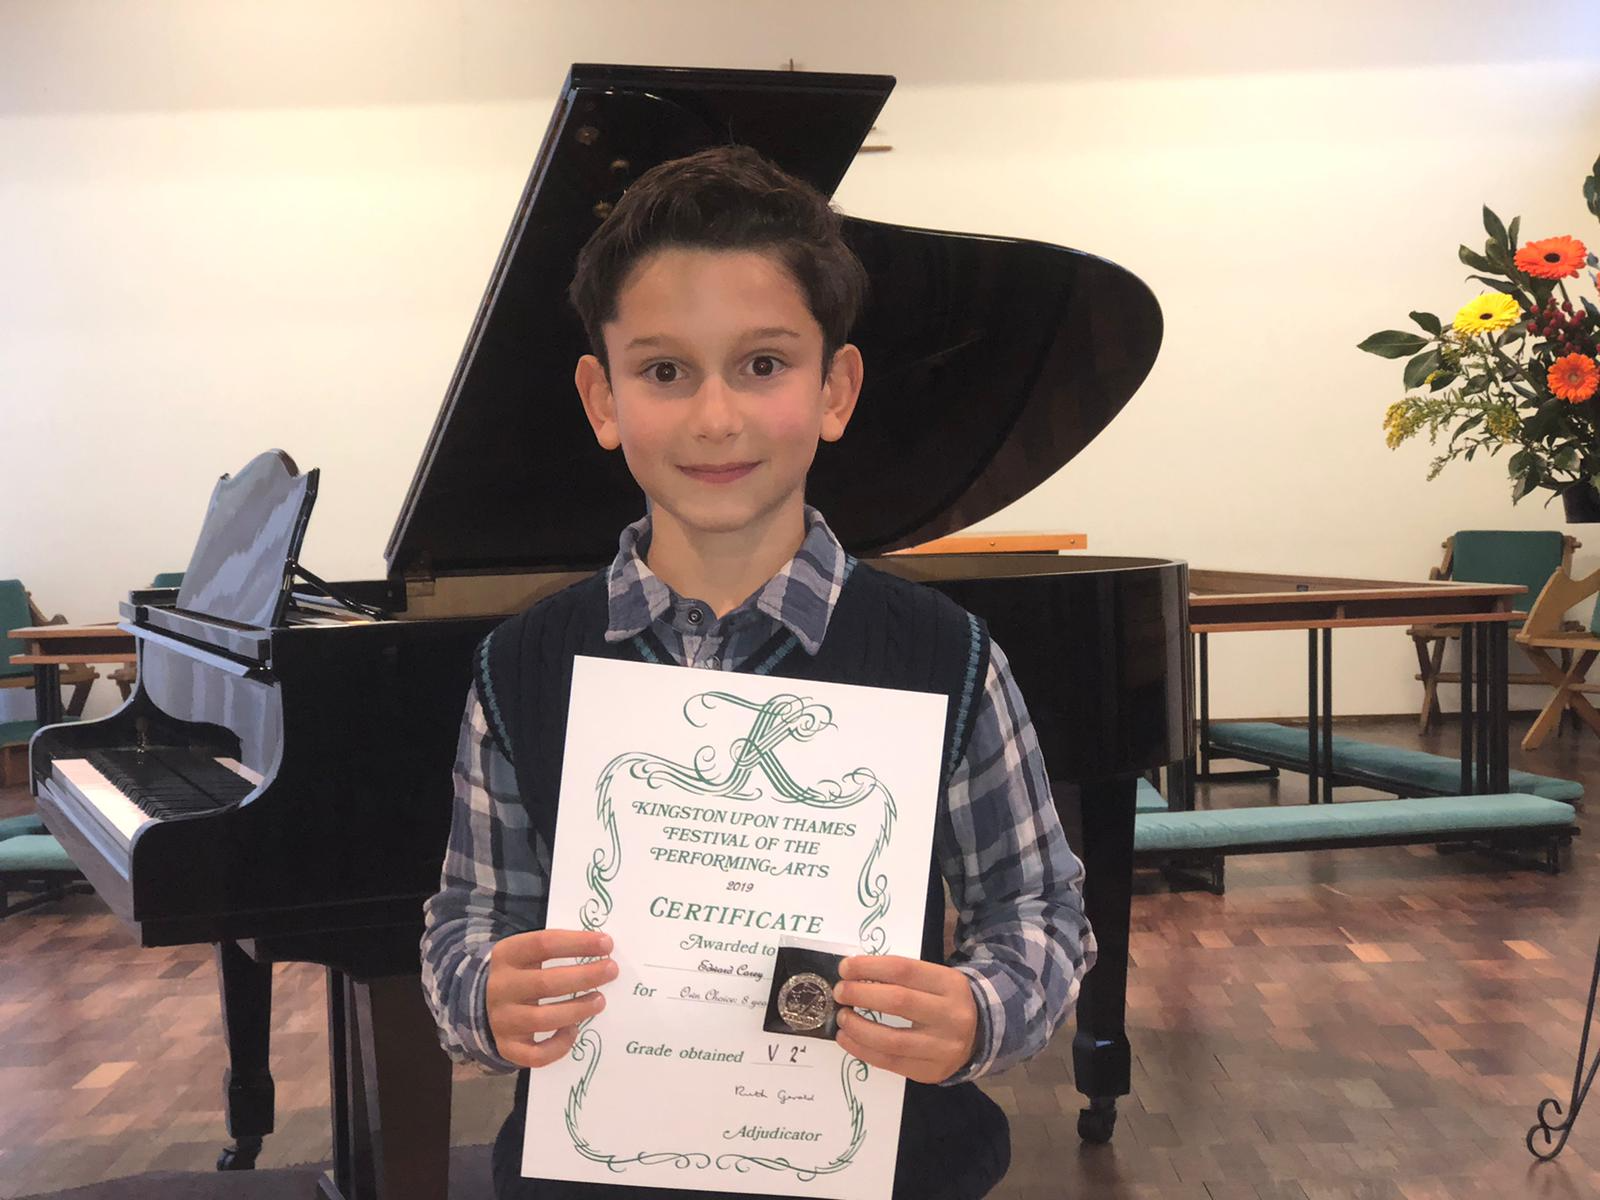 Another success at the Kingston Festival of the Performing Arts